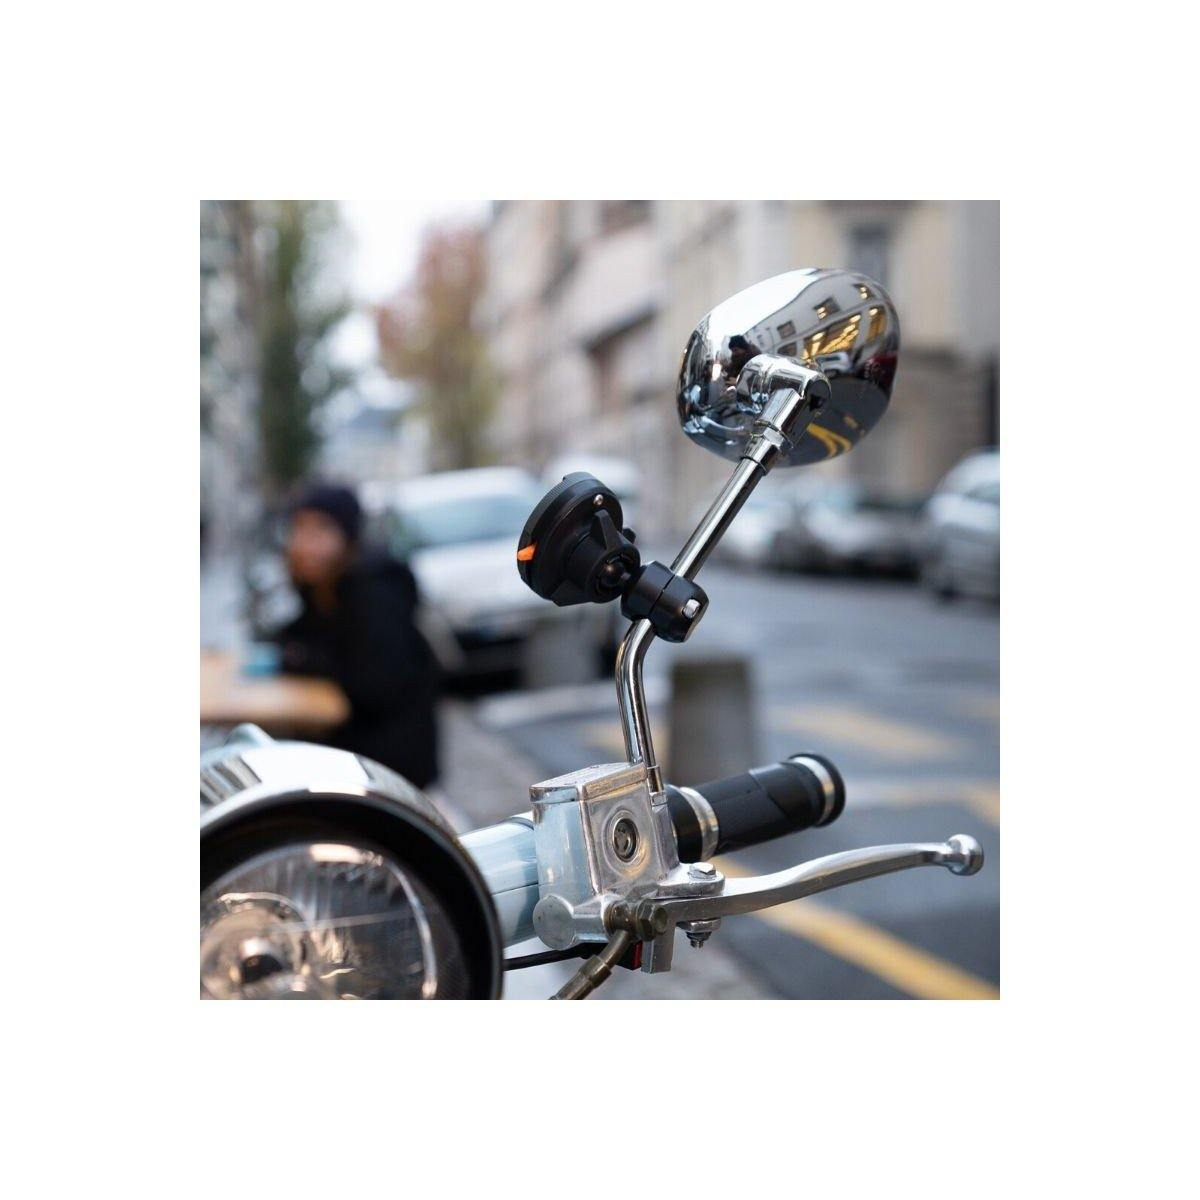 FitClic Neo Scooter kit for Samsung Galaxy Note 10 - BuyBits Ltd UK